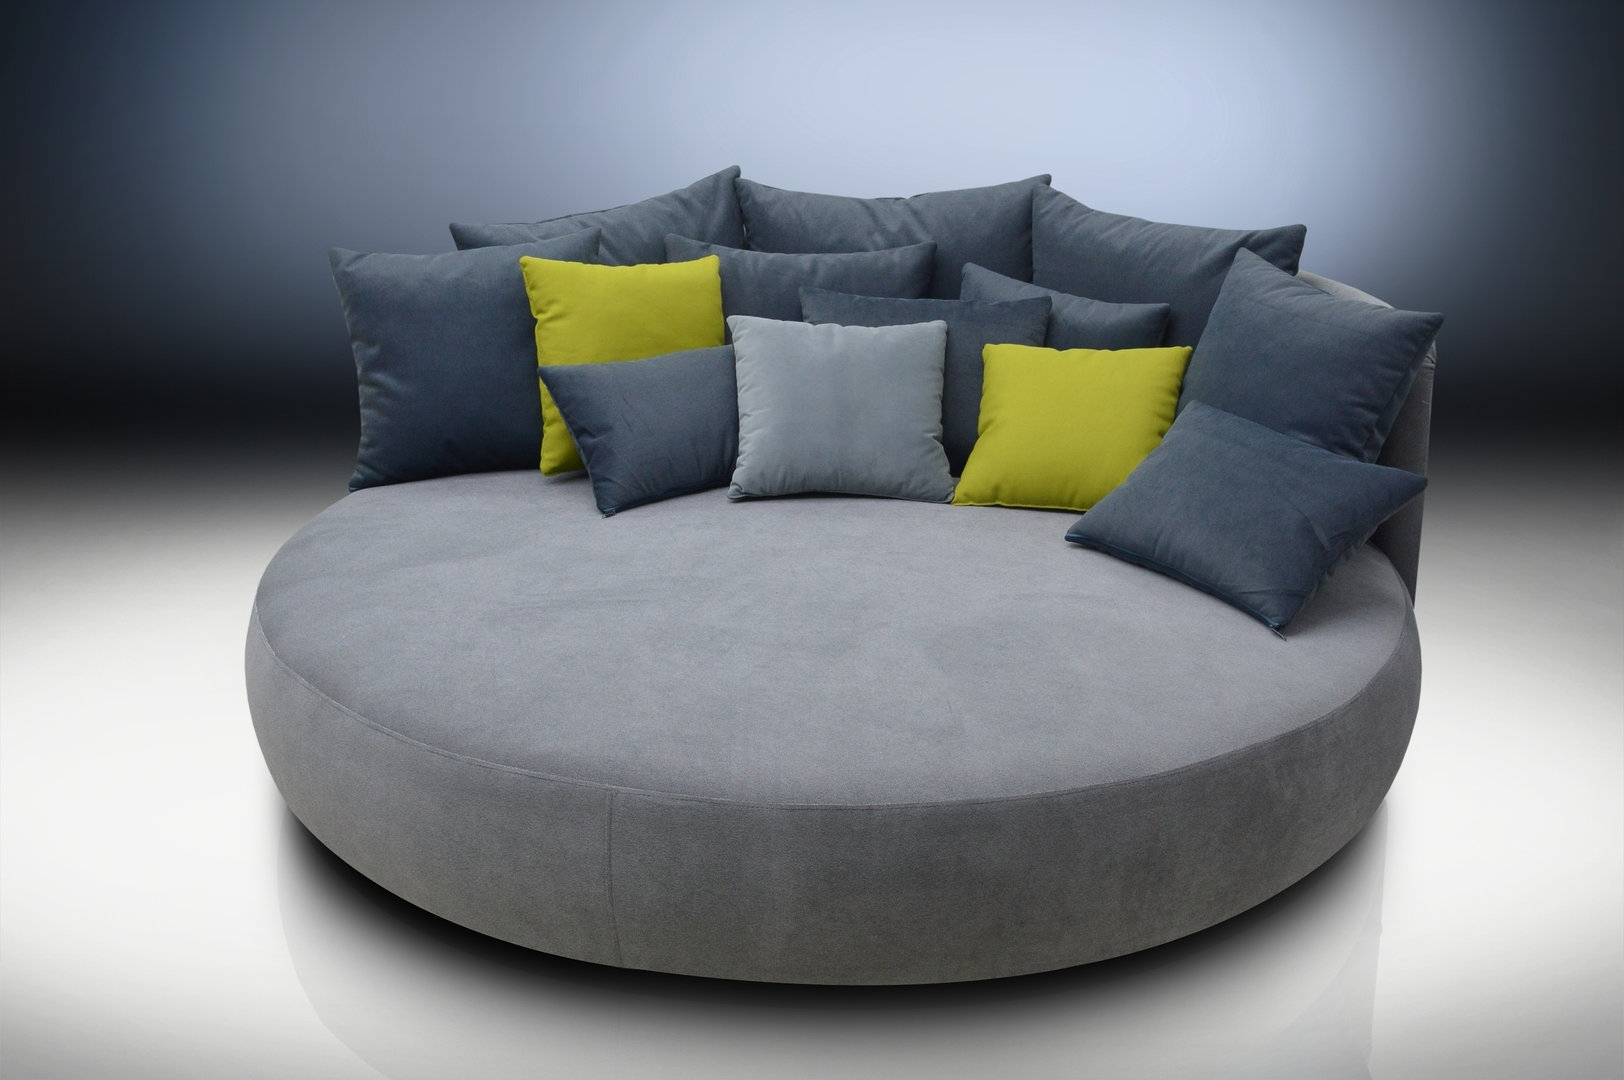 Gallery Of Round Sofas View 6 20